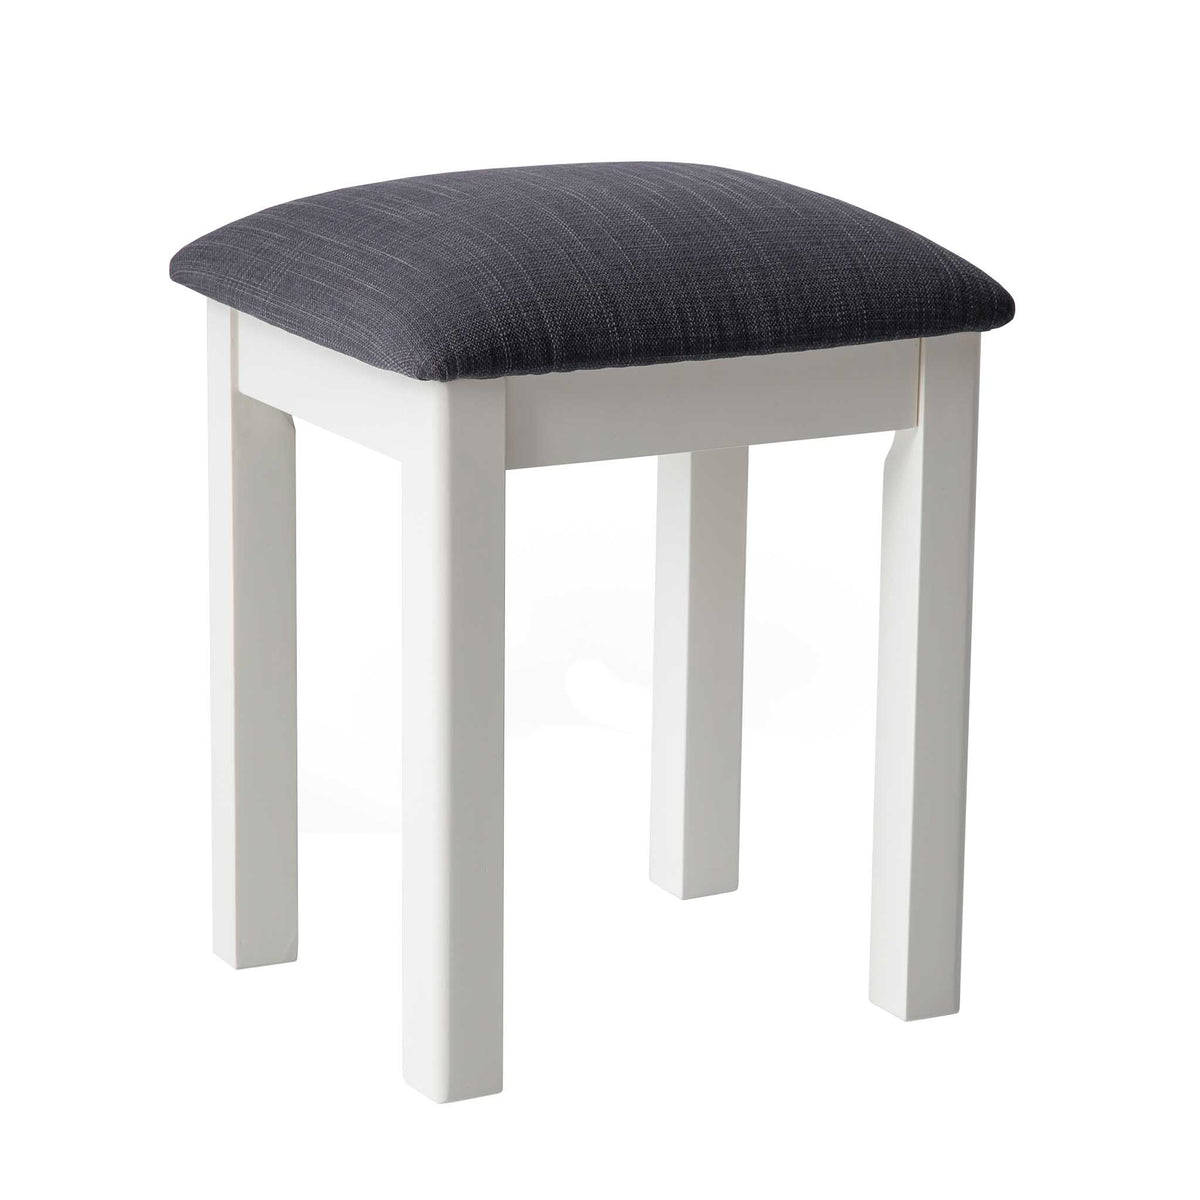 The Padstow White Wooden Dressing Stool with Padded Seat from Roseland Furniture